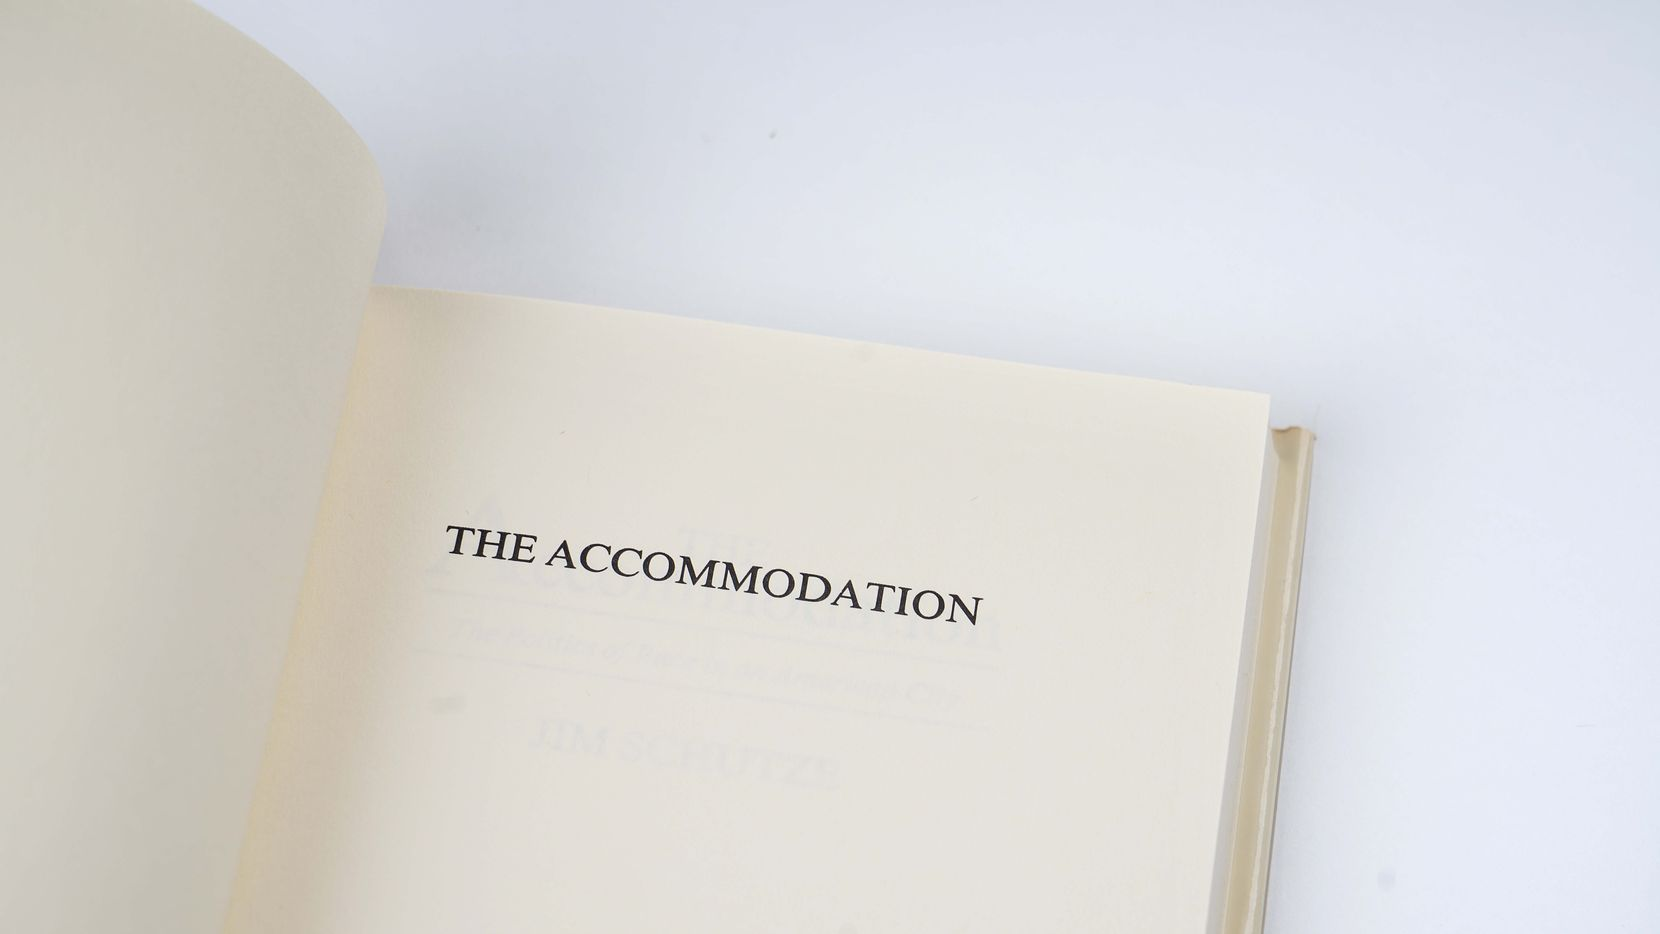 'The Accommodation' by Jim Schutze photographed on Thursday, June 25, 2020.